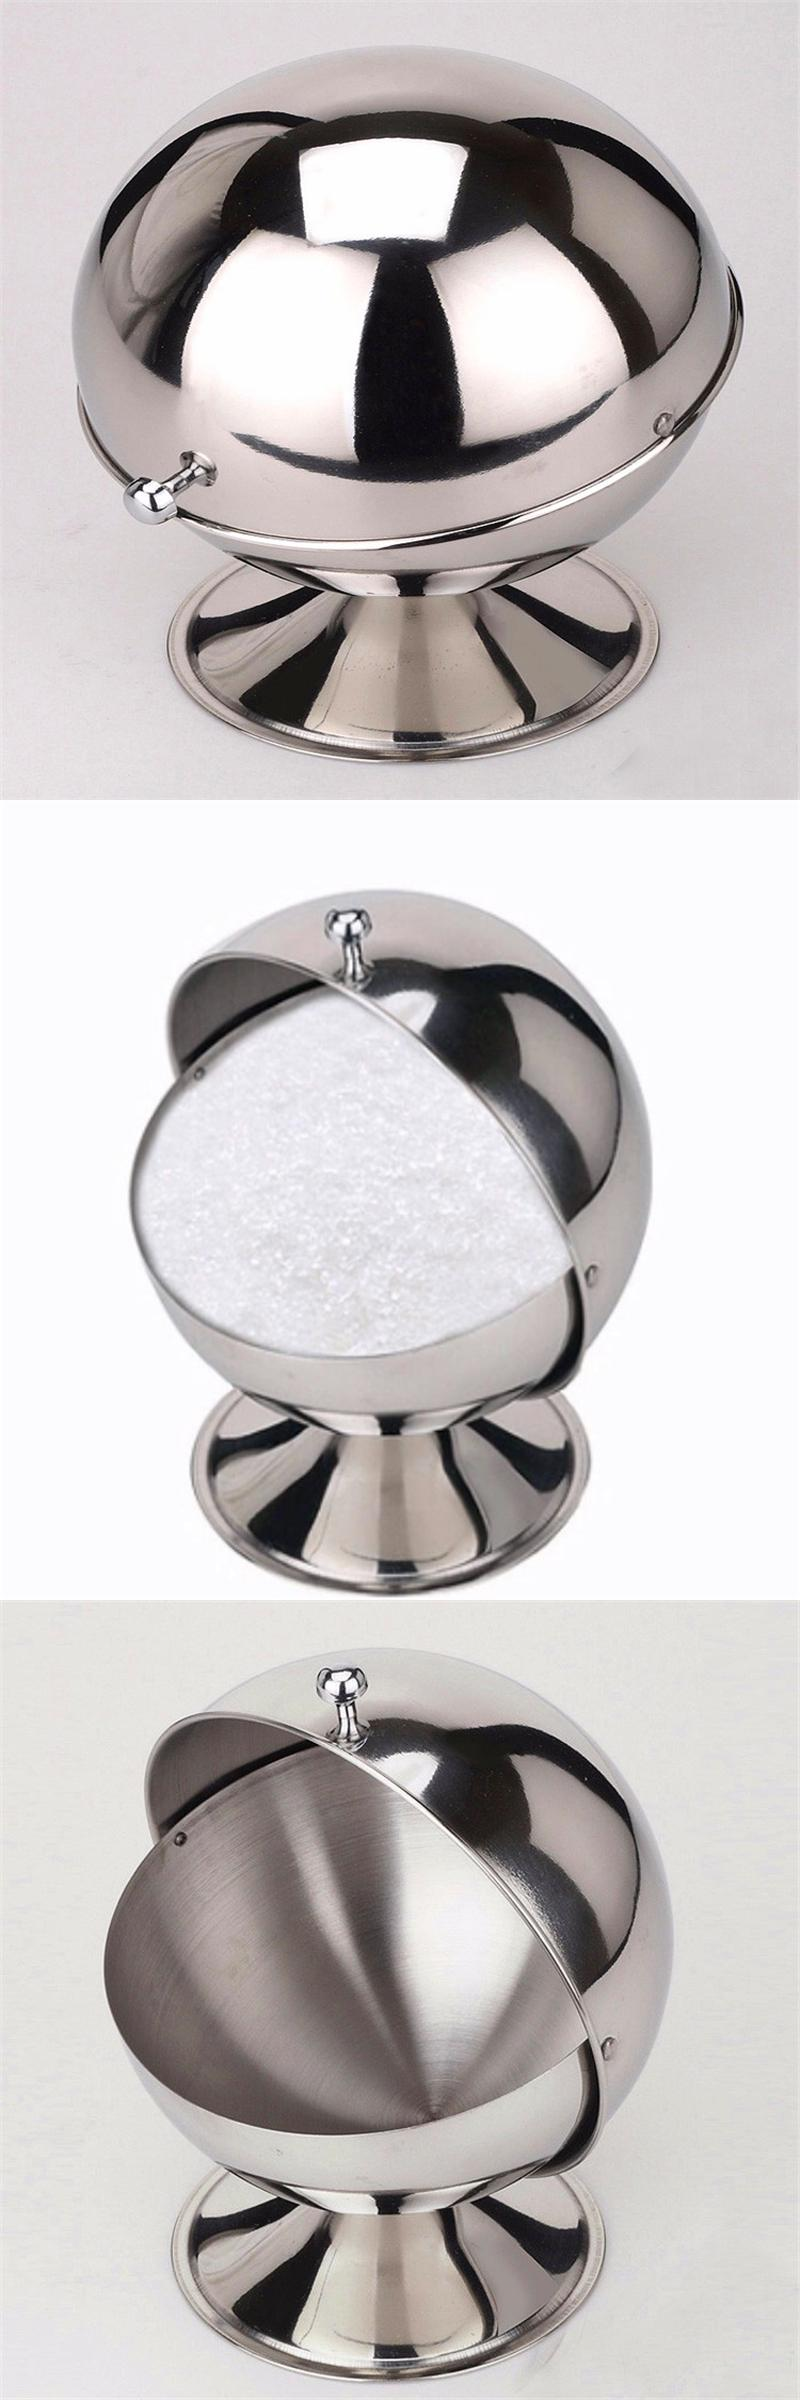 [Visit To Buy] Sugar Bowl Spherical Stainless Steel Kitchen Spice Bottle  Flip Cup Sugar